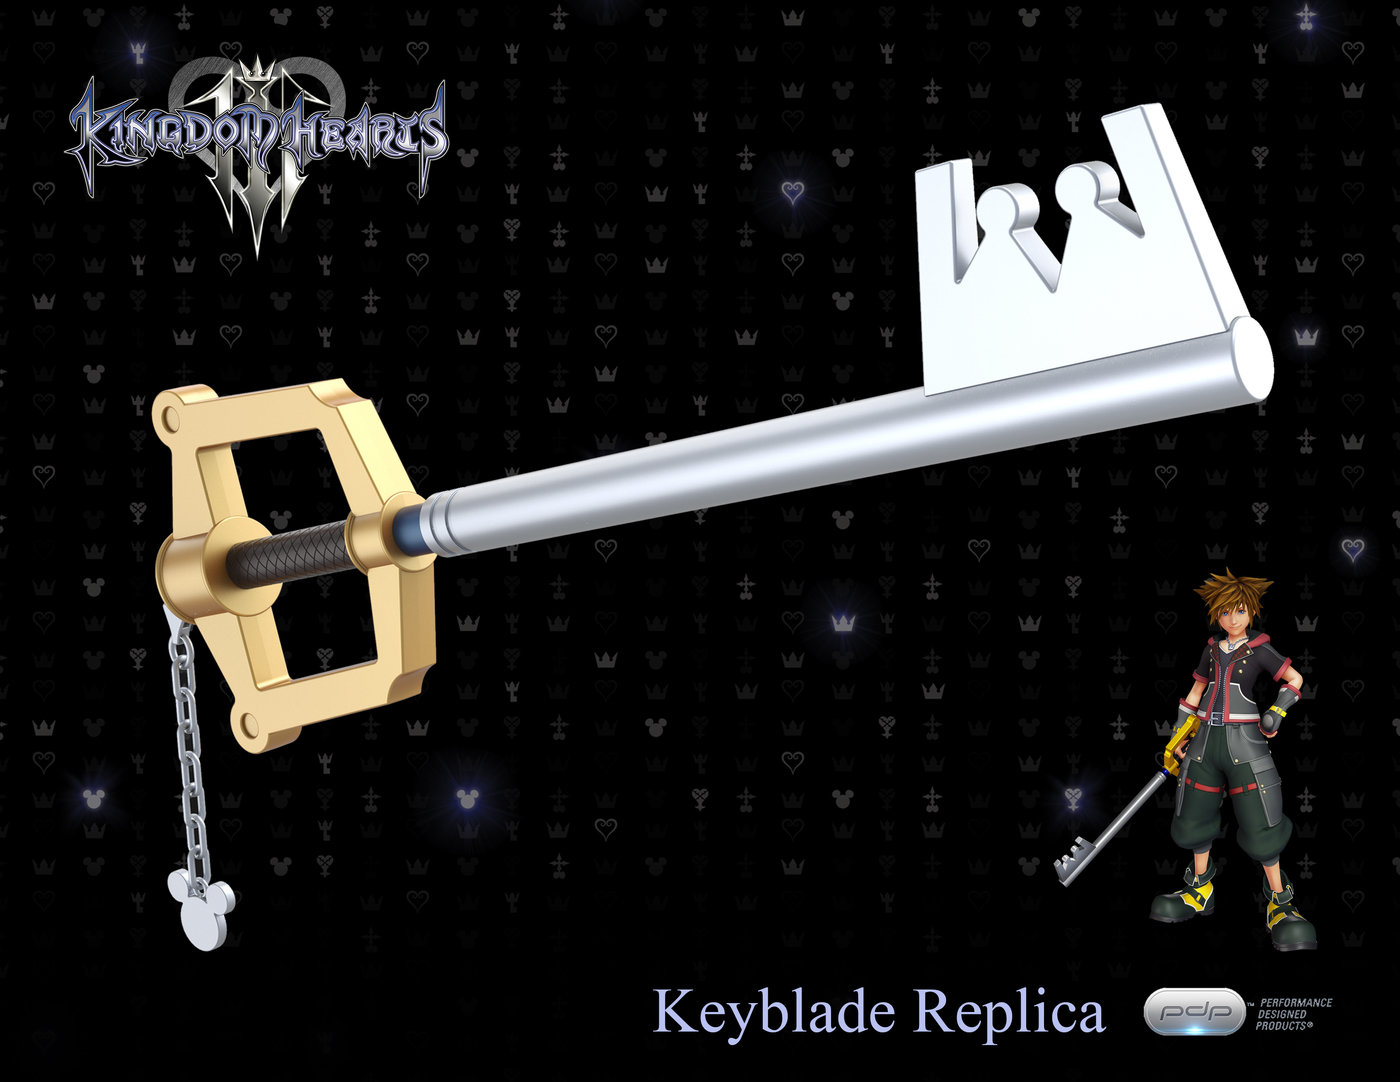 Kingdom Hearts Iii Keyblade Replica By Dennis Foster At